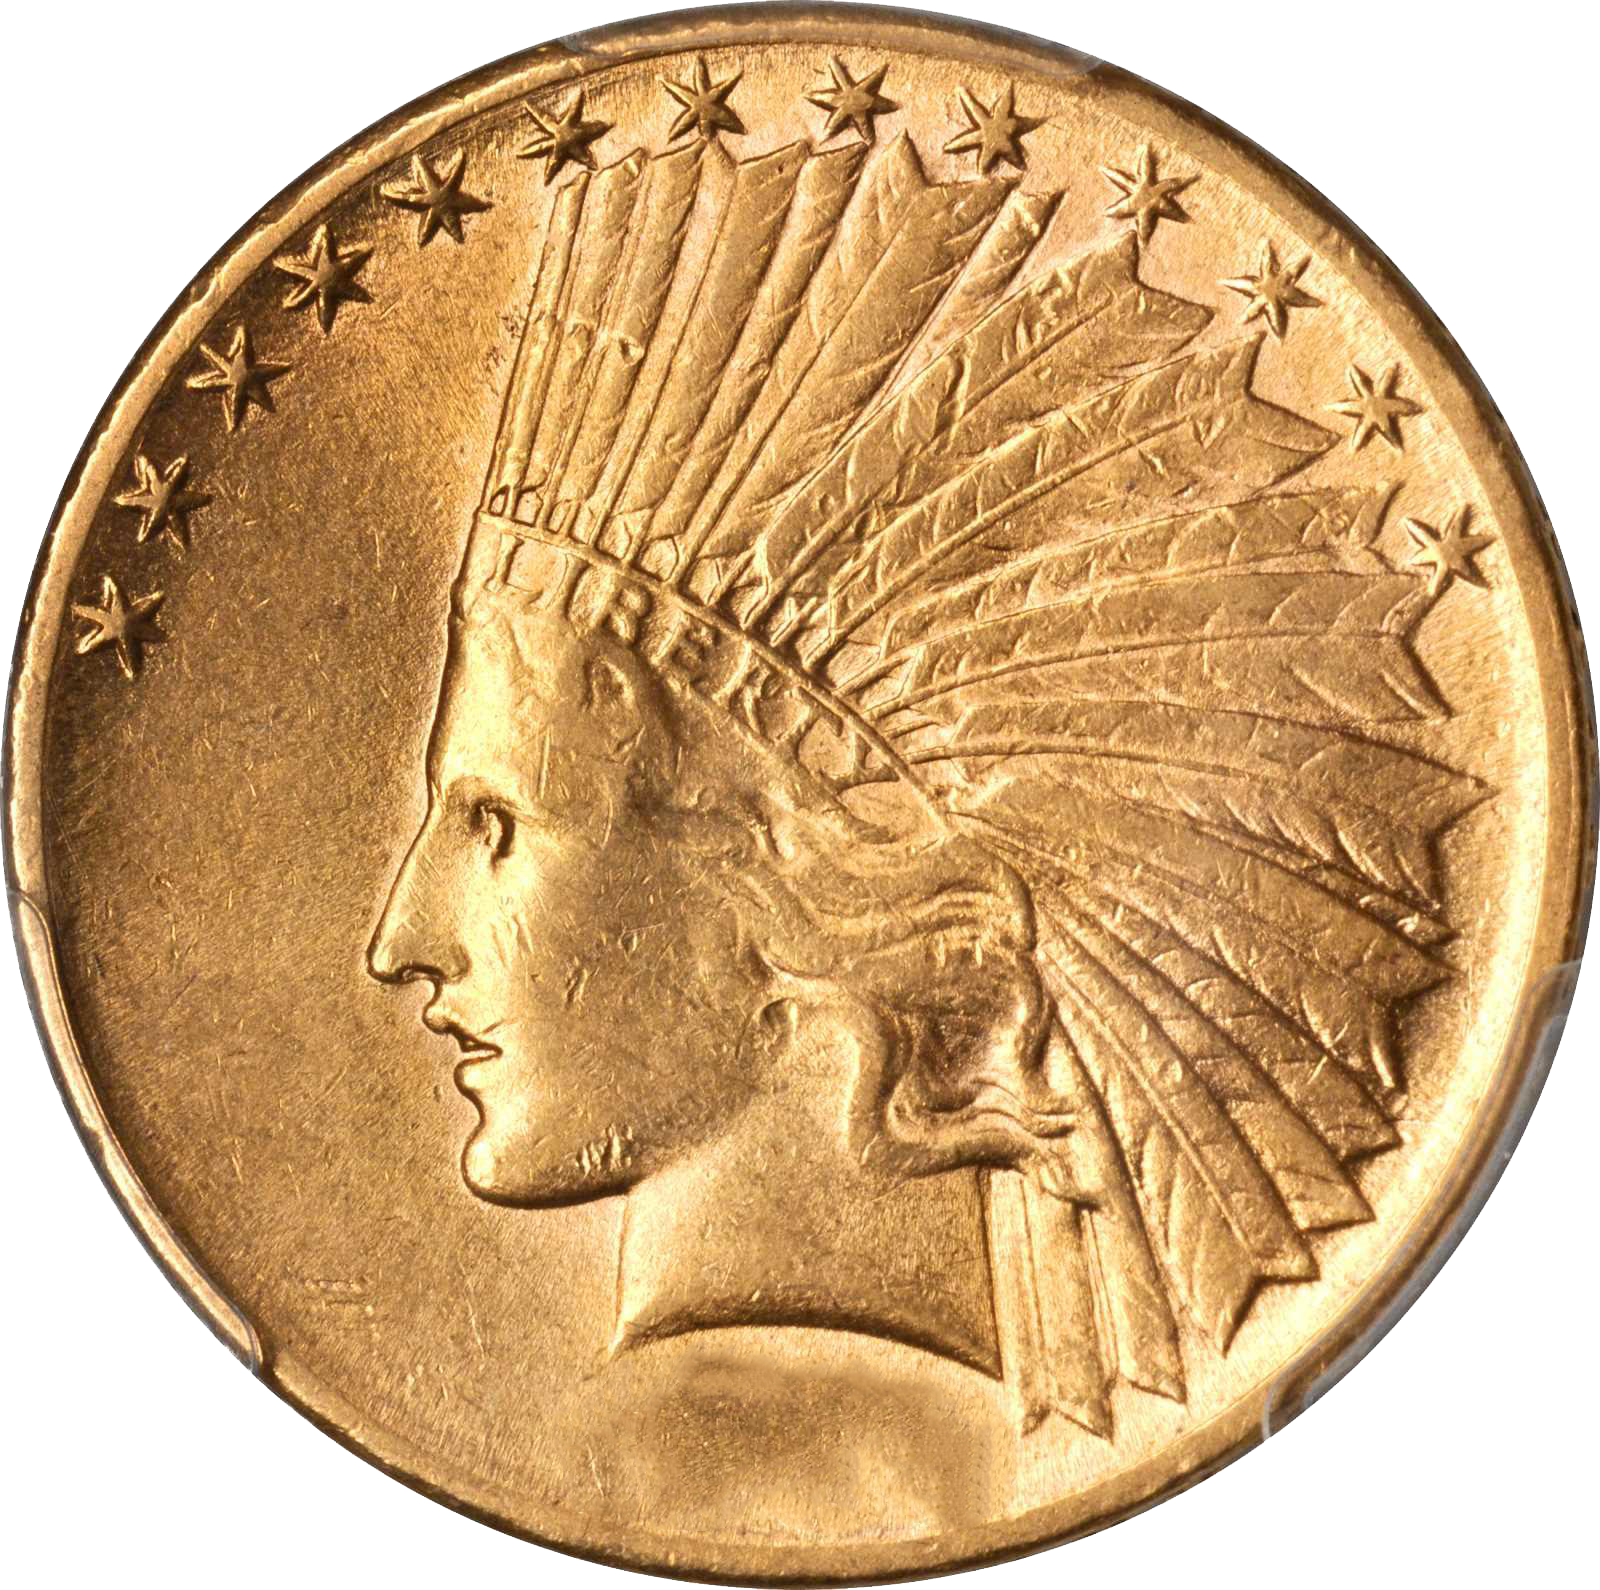 1914 indian head $10 gold coin